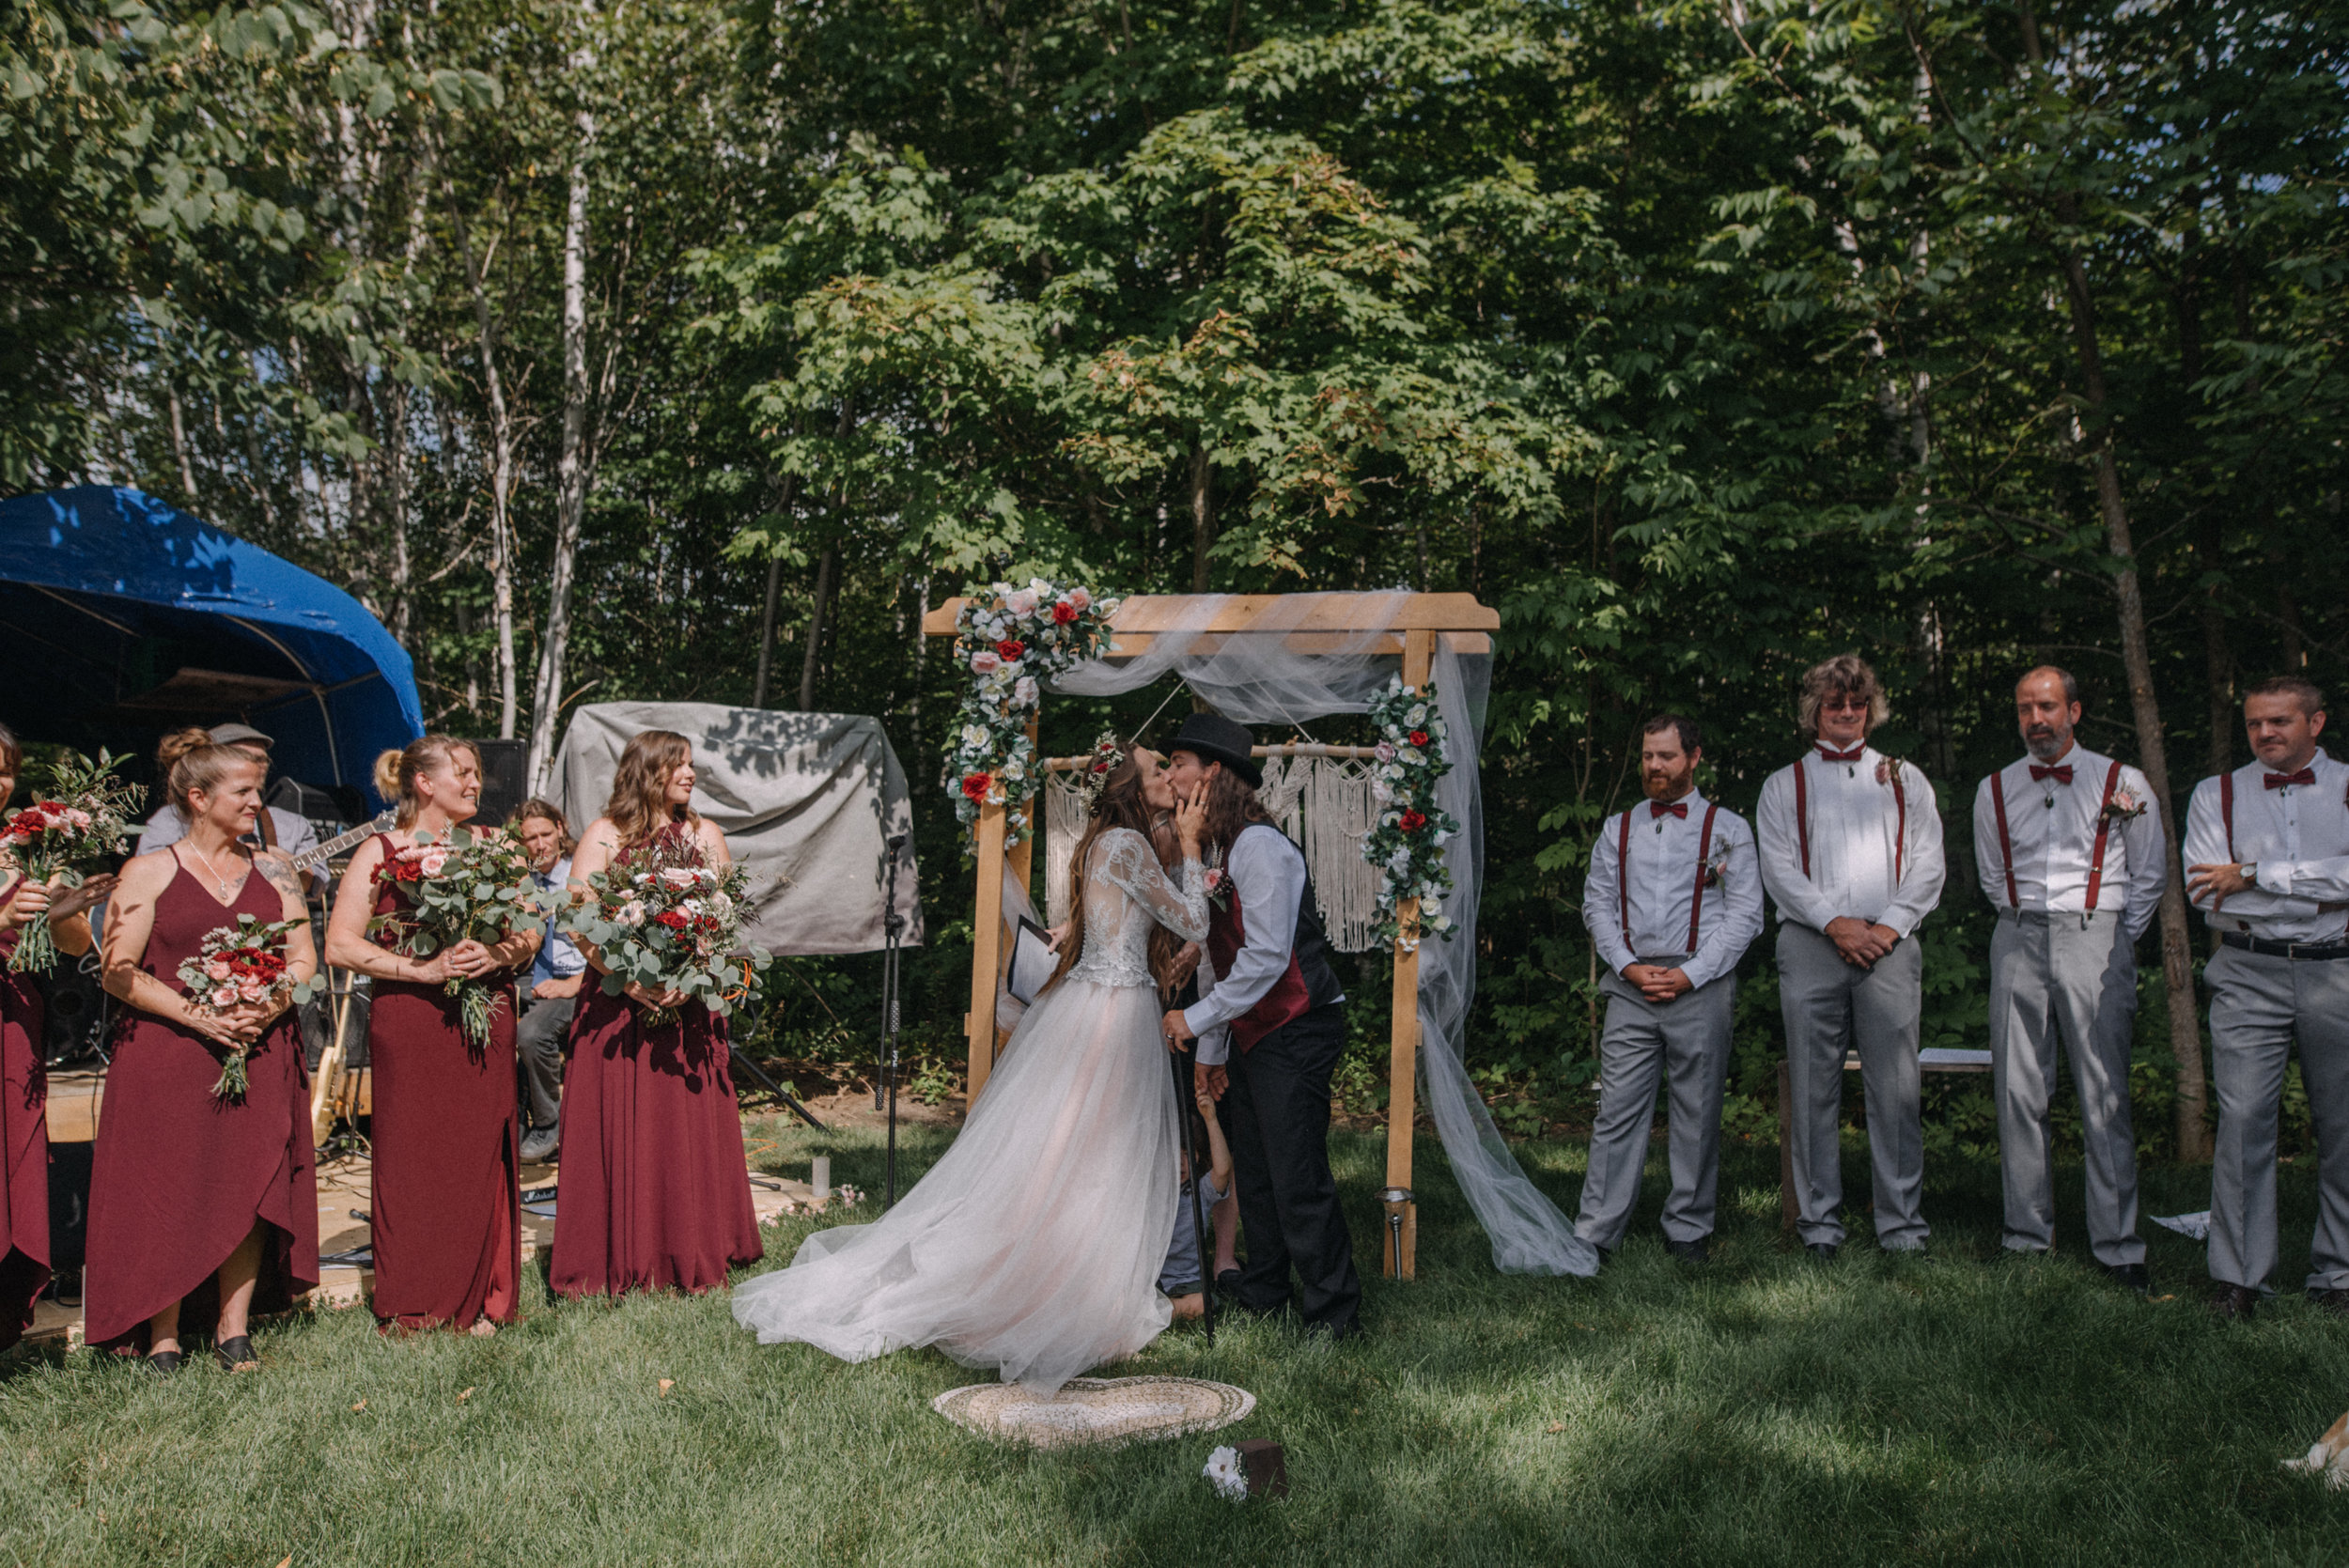 ottawa_wedding_photographer_gatineau_photographe_mariage_documentary_candid_photojournalist_natural_raw_boho_wedding_backyard (21).JPG